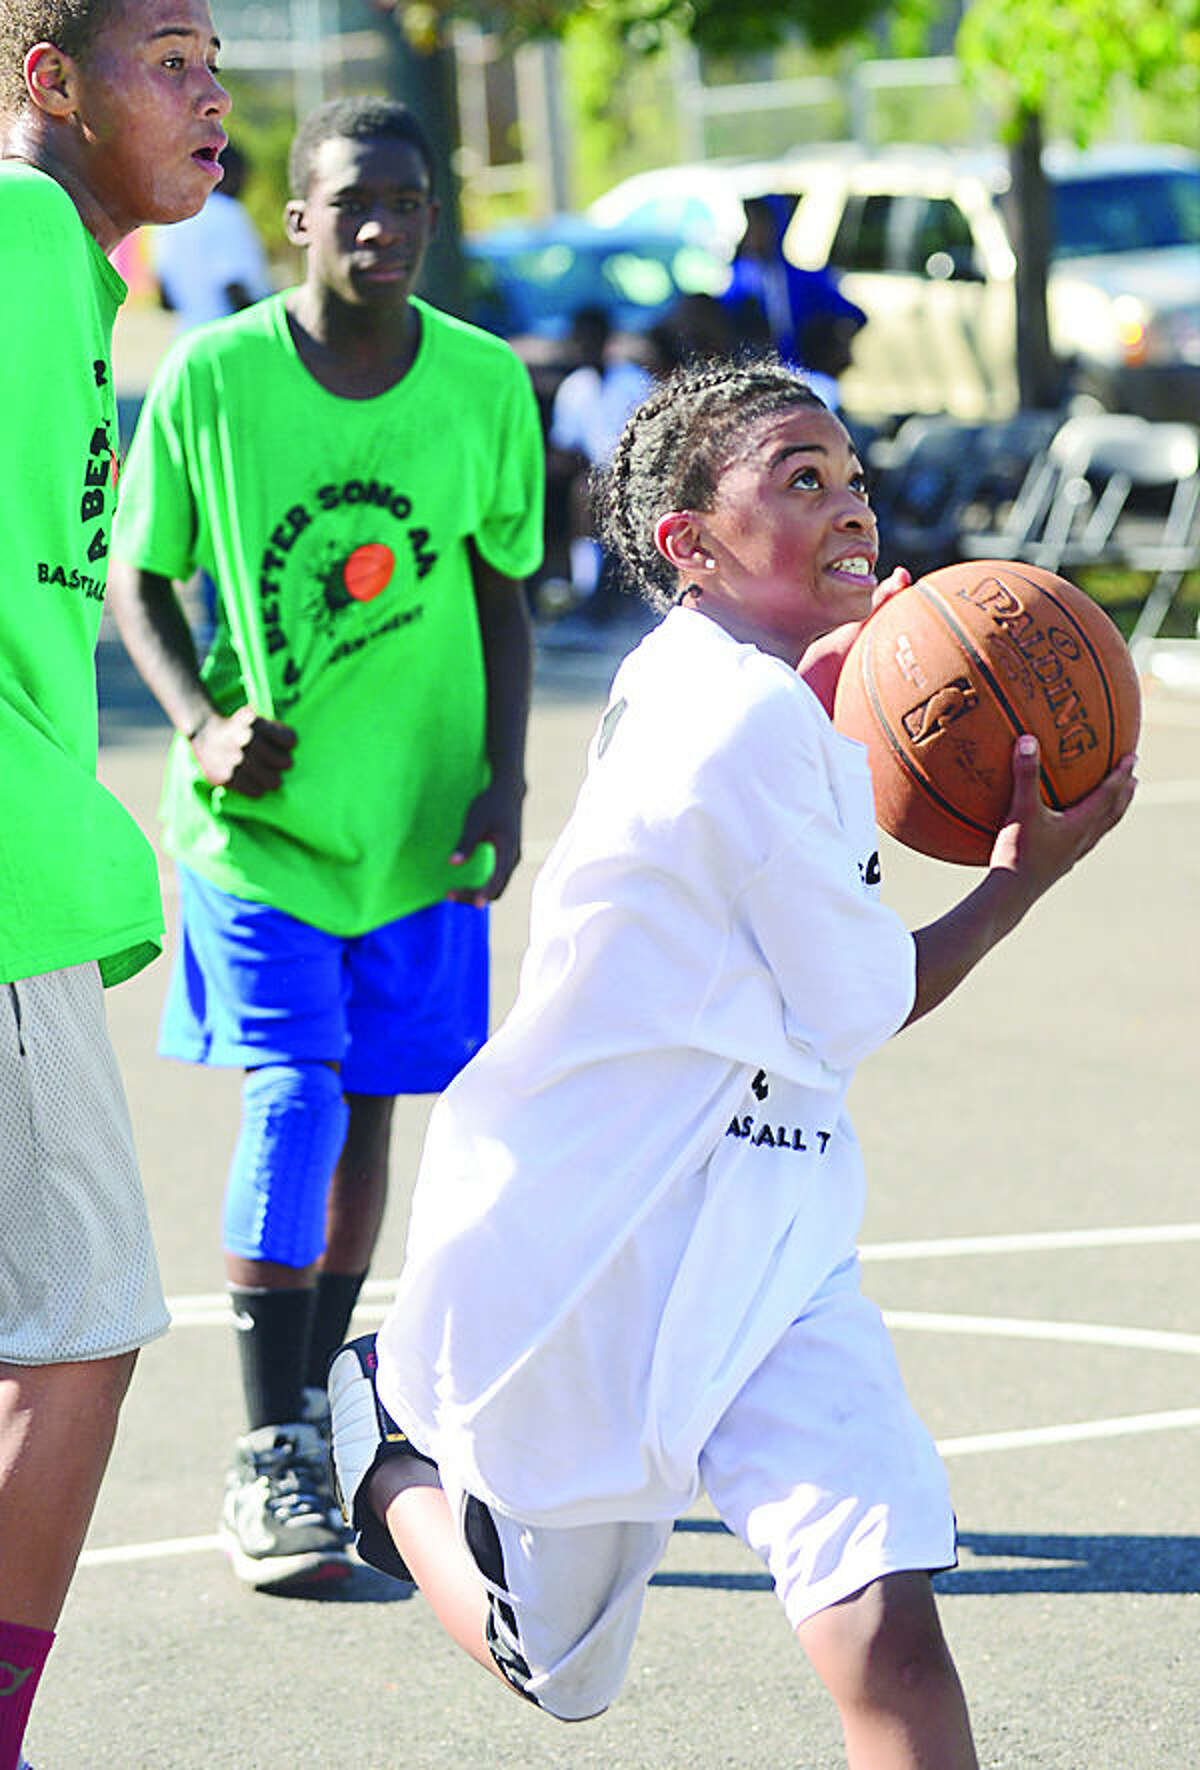 Hour photo / Erik Trautmann 14 year old Robert Raphael goes to the hoop in the basketball tournament during the 3rd annual South Norwalk Community Day Saturday at Ryan Park.